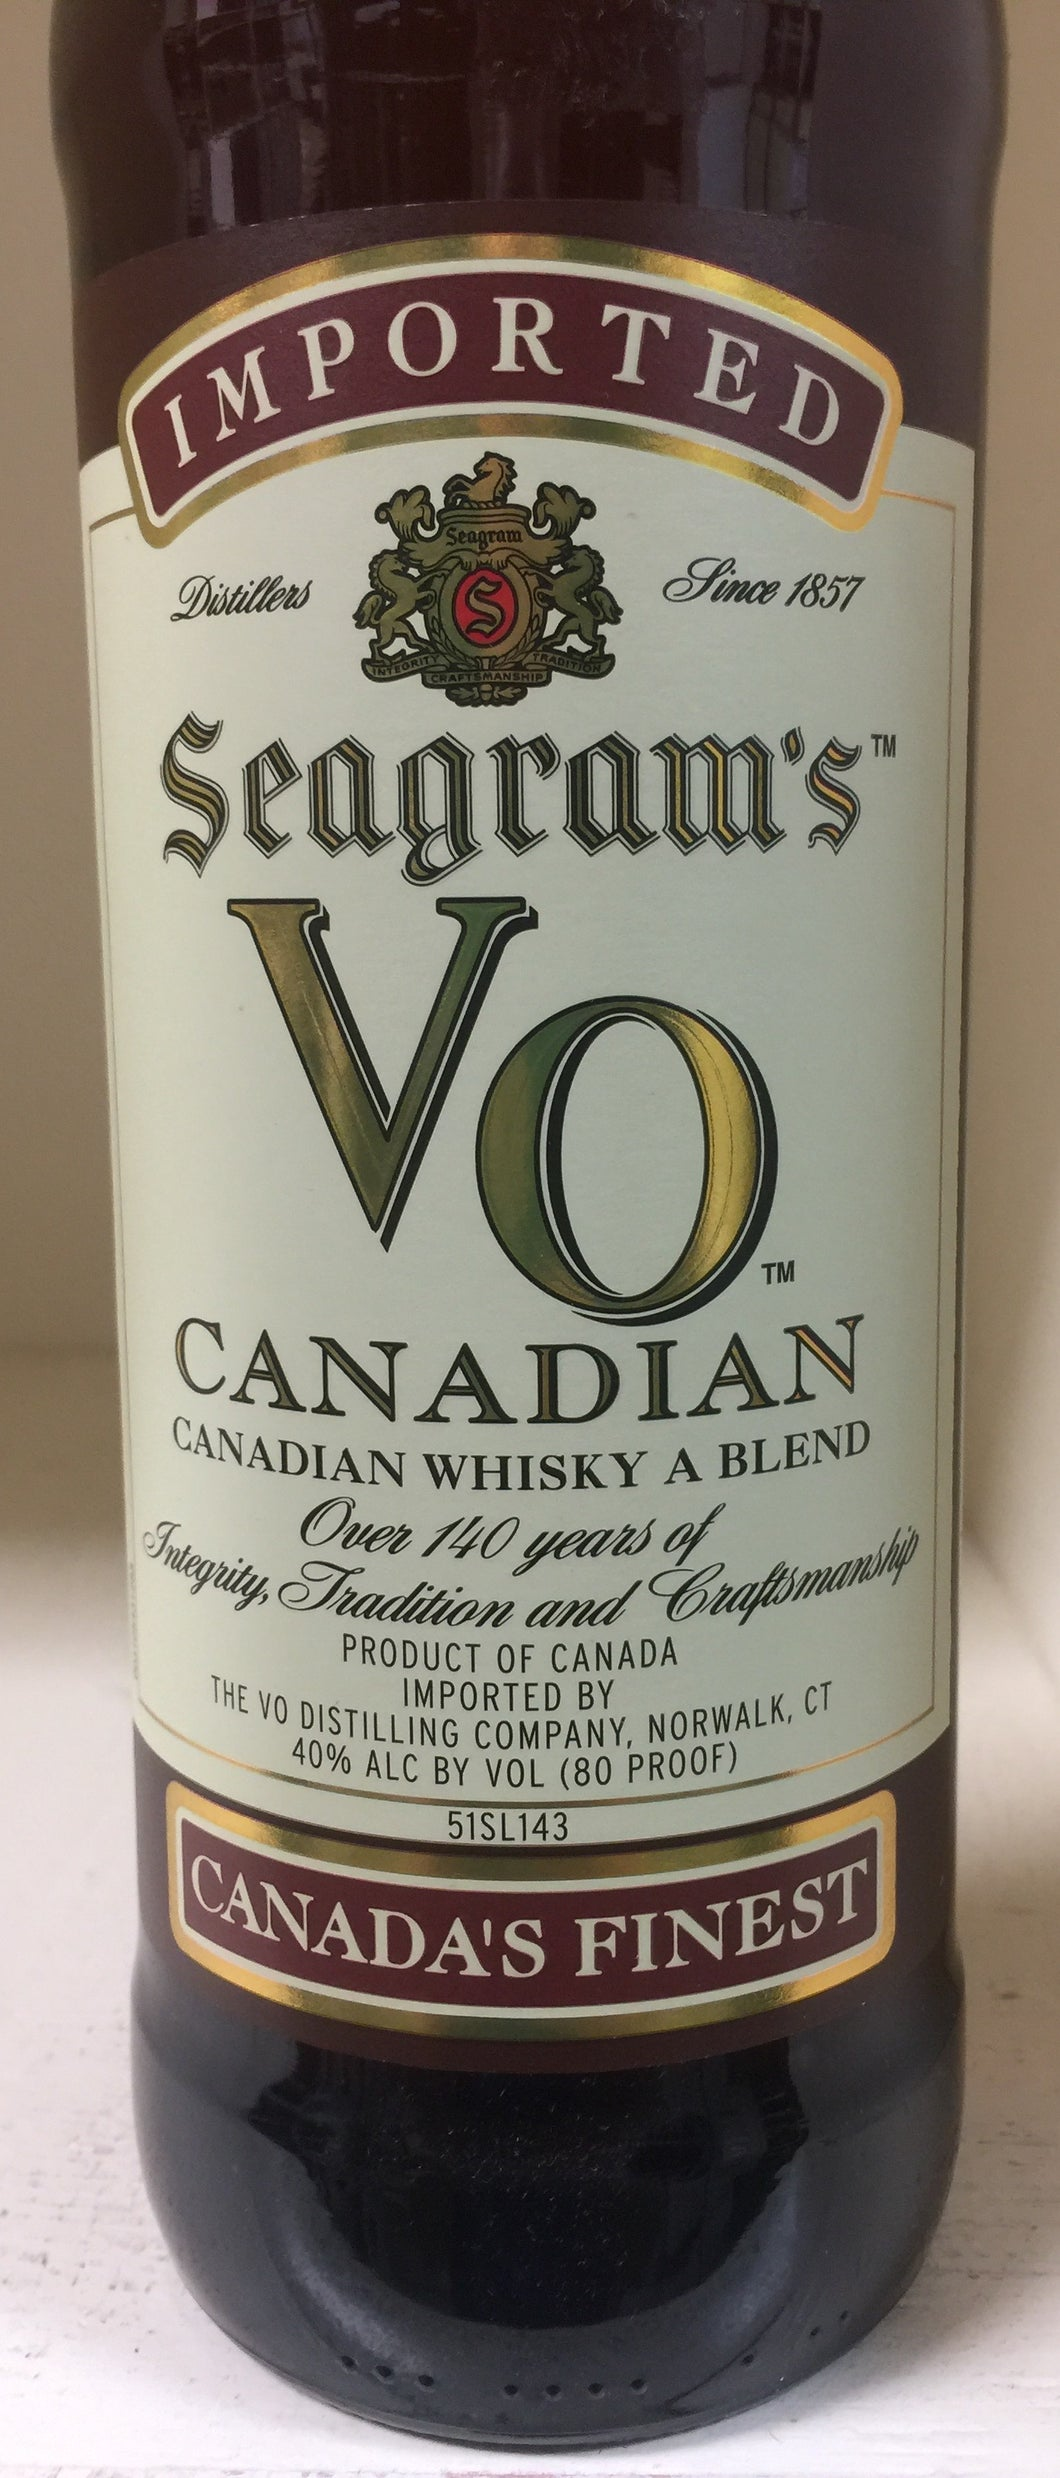 Seagrams' V.O. Canadian Whiskey